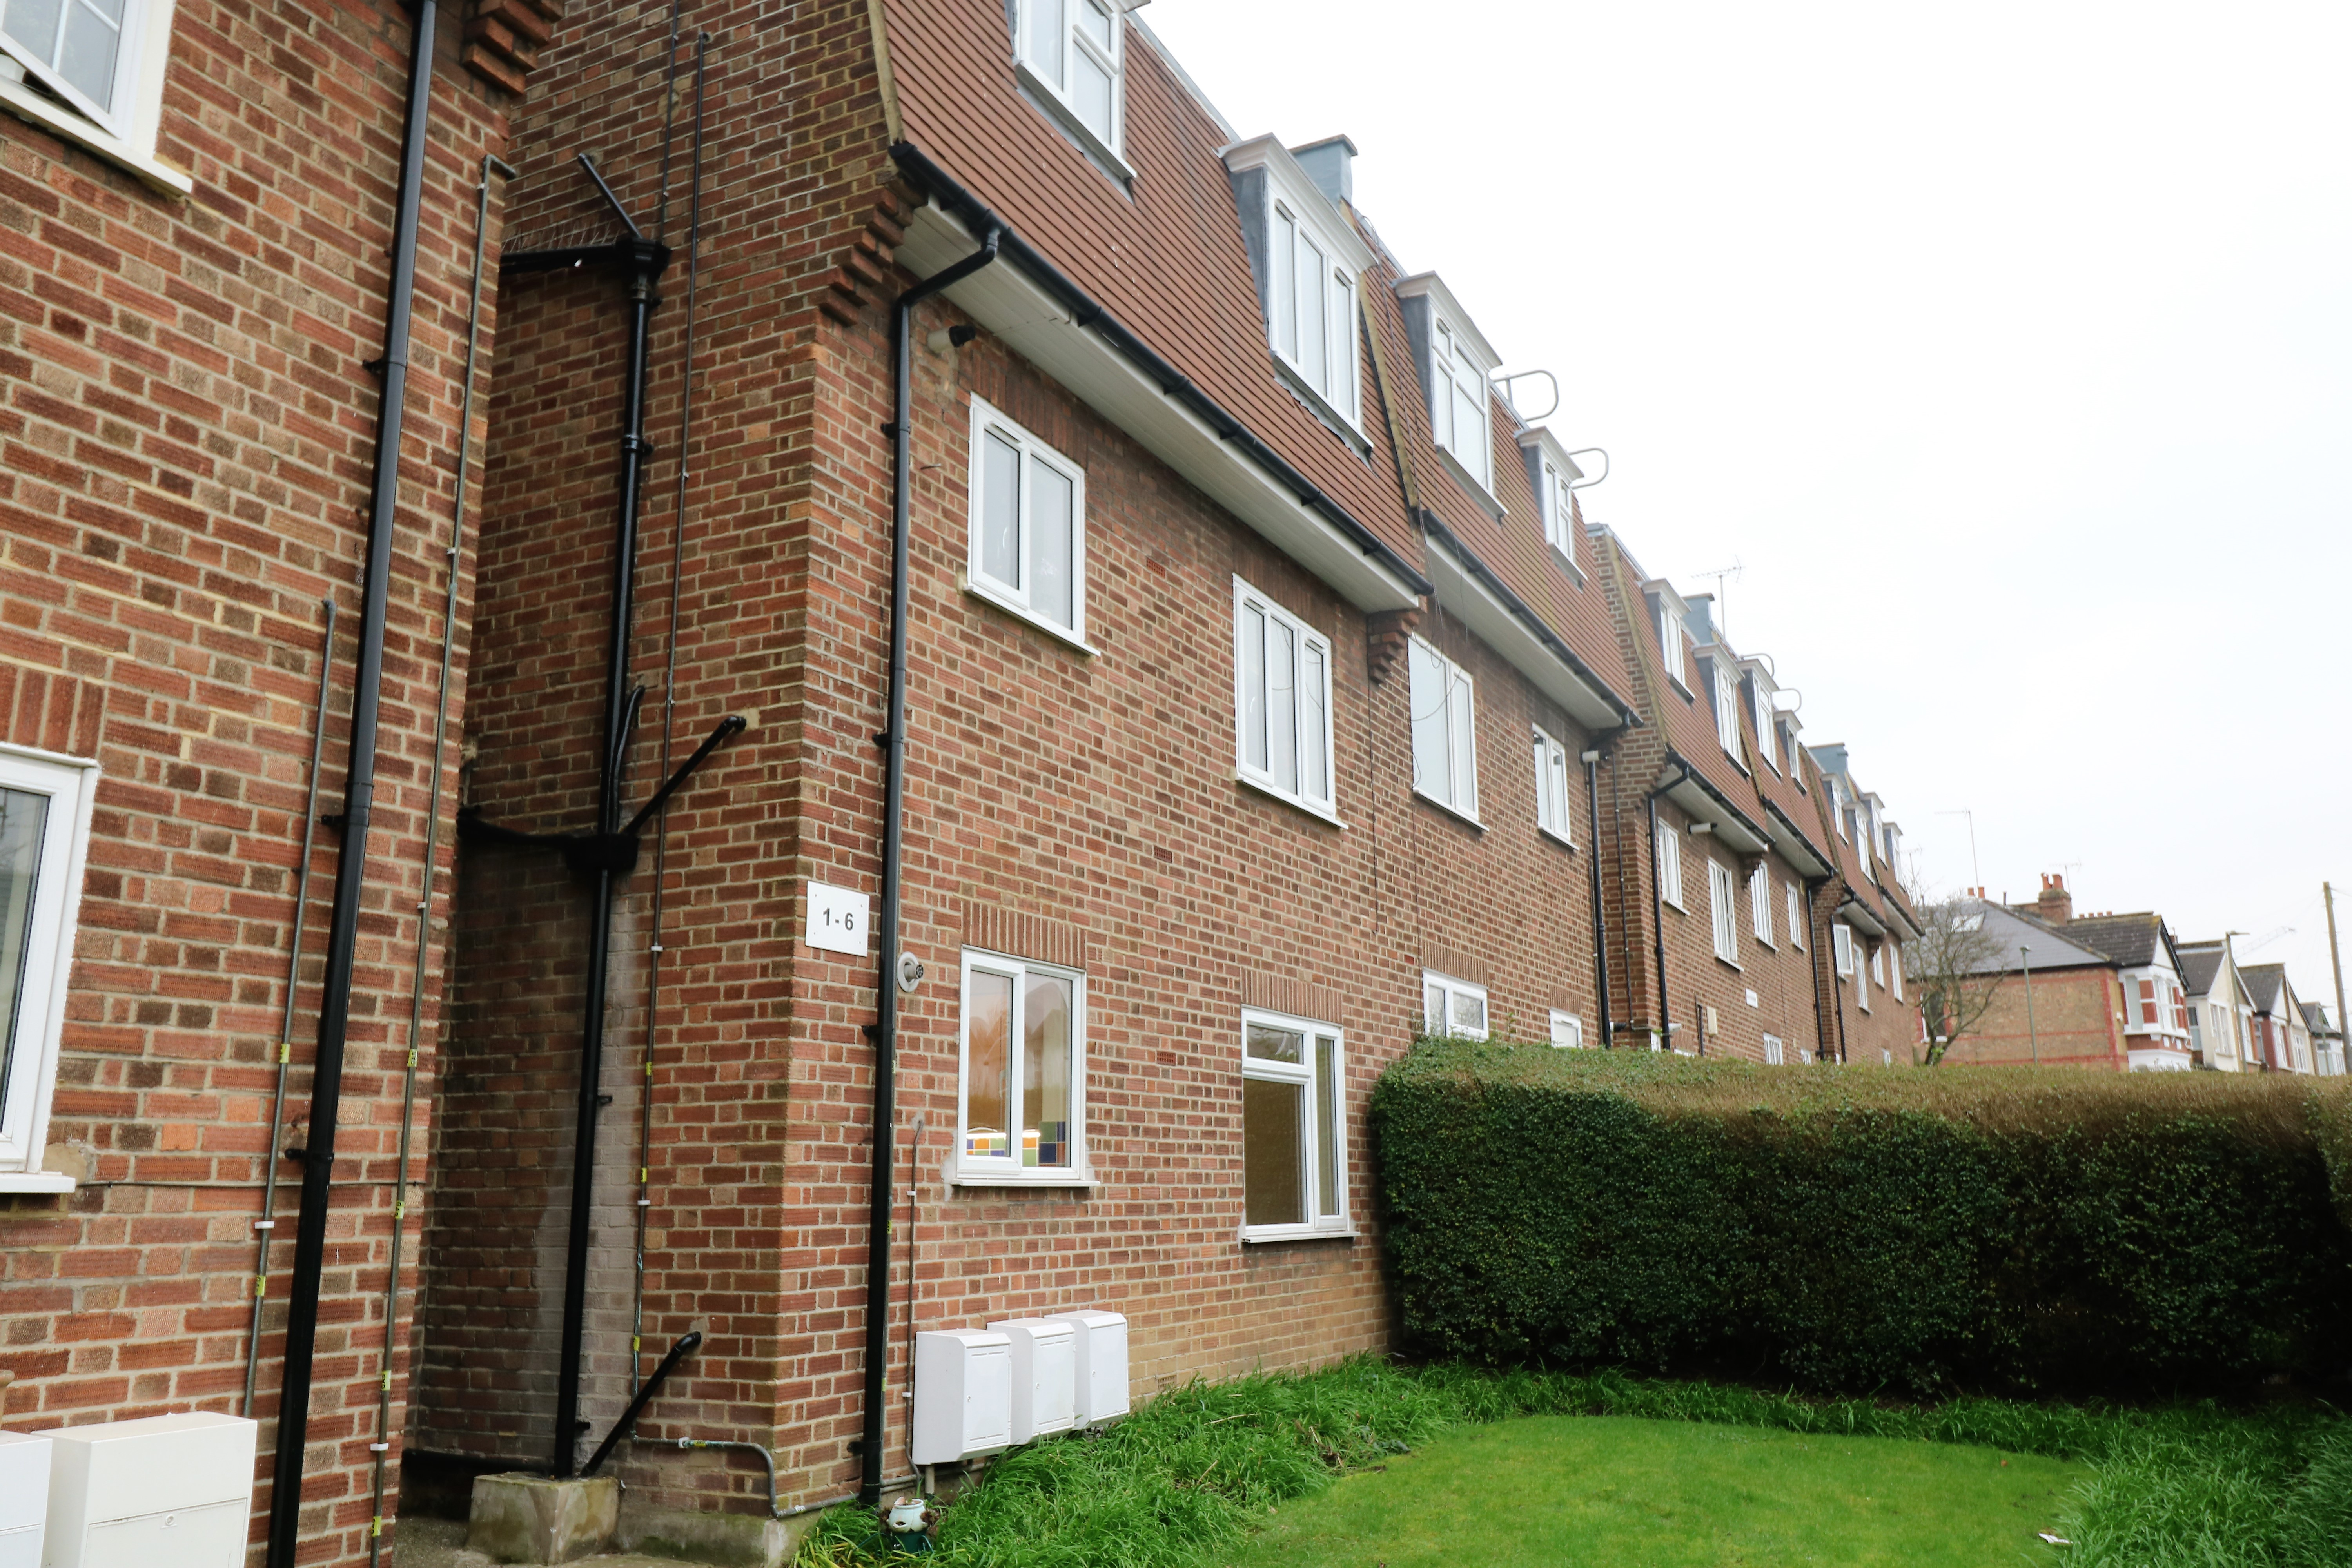 For sale: Muswell Hill, N10 refurbished ground floor two double bedroom flat. Parking, chain free SOF.